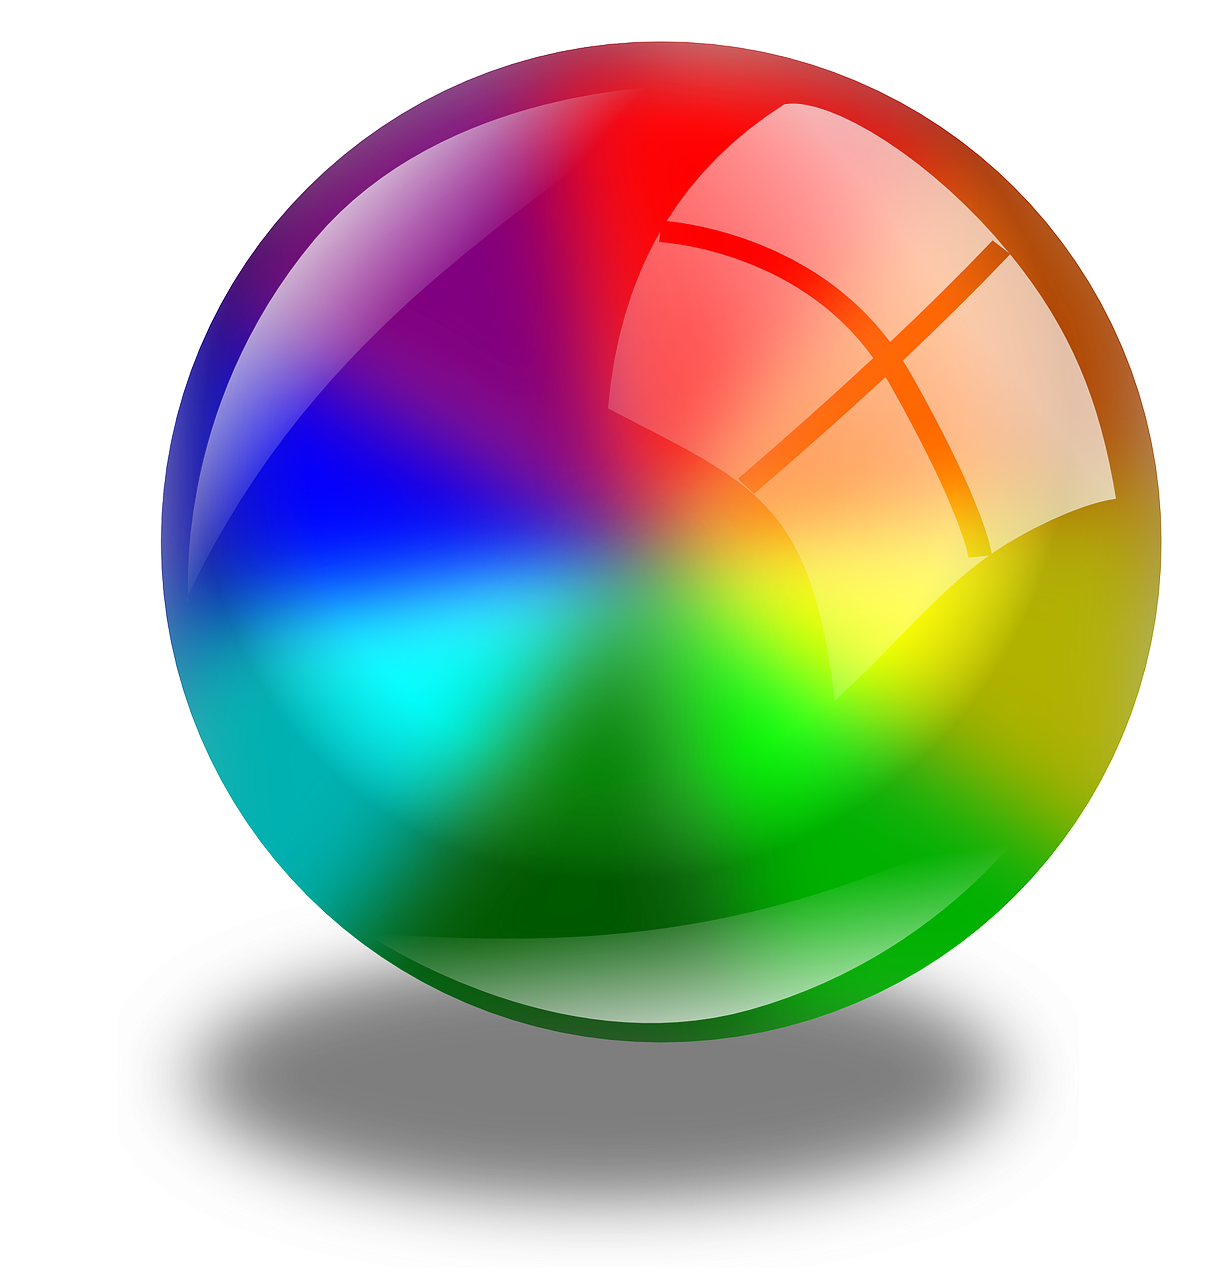 Ball - Variety of Colours